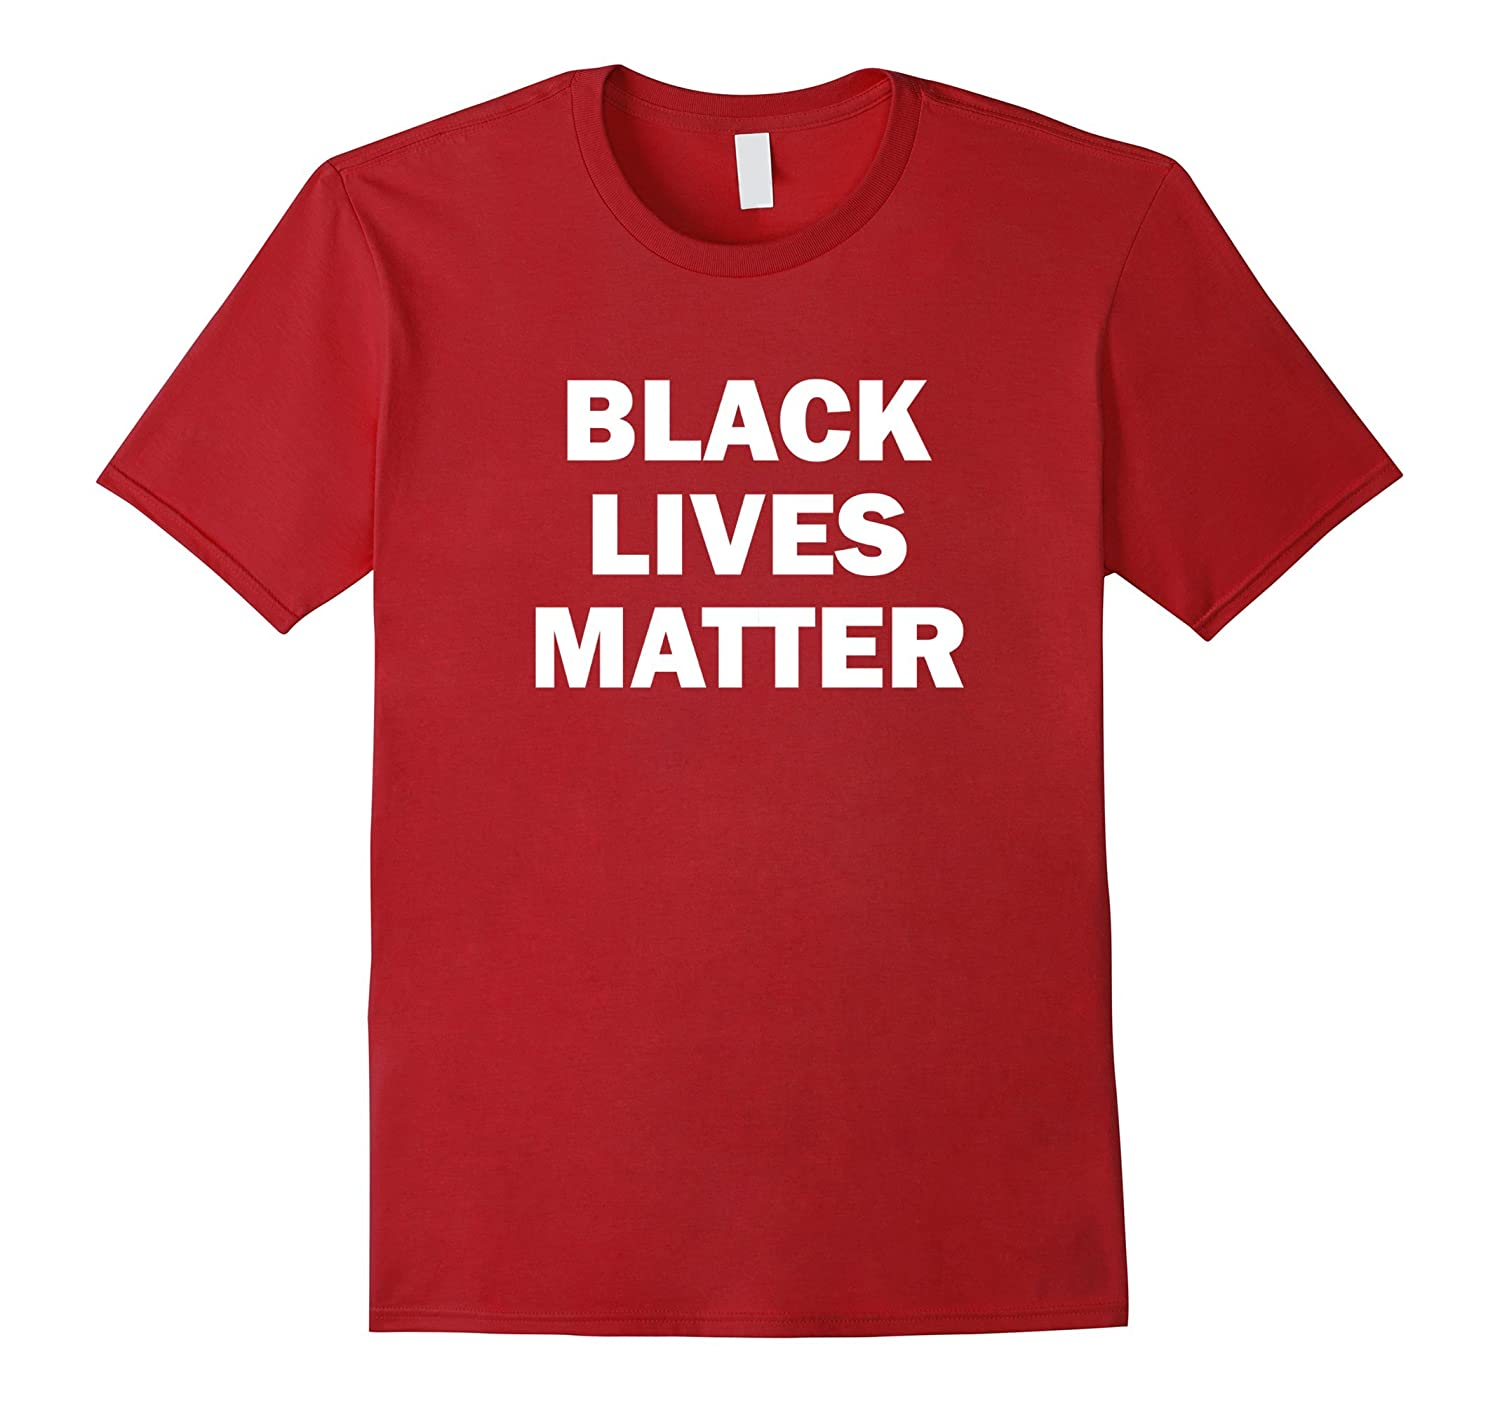 Black Lives Matter T-Shirt - Men's, Women's & Kids' Sizes-CL